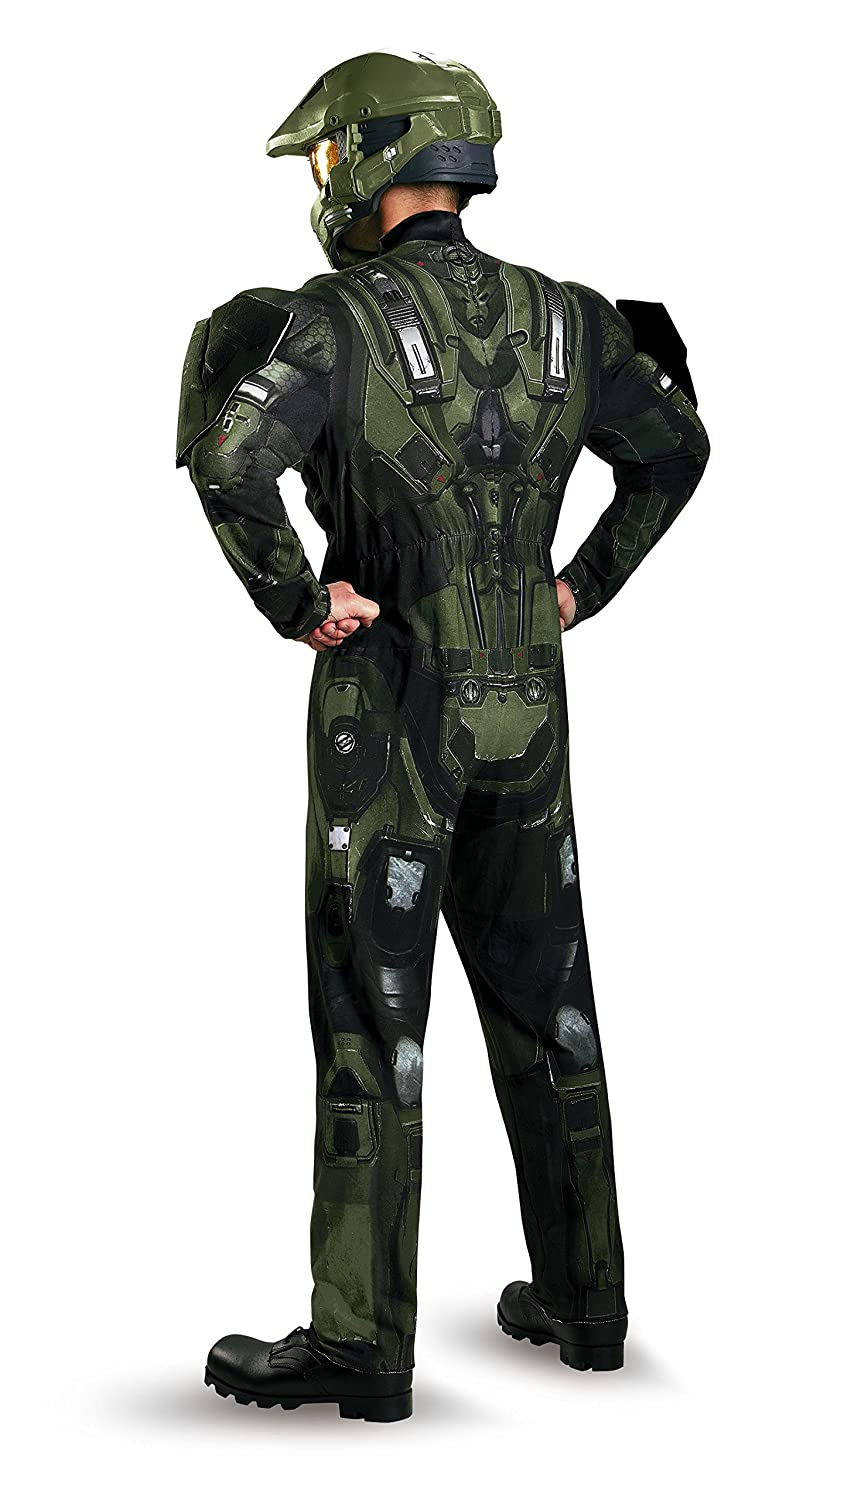 Disguise Limited Boys Plus Size Deluxe Muscle Master Chief ...